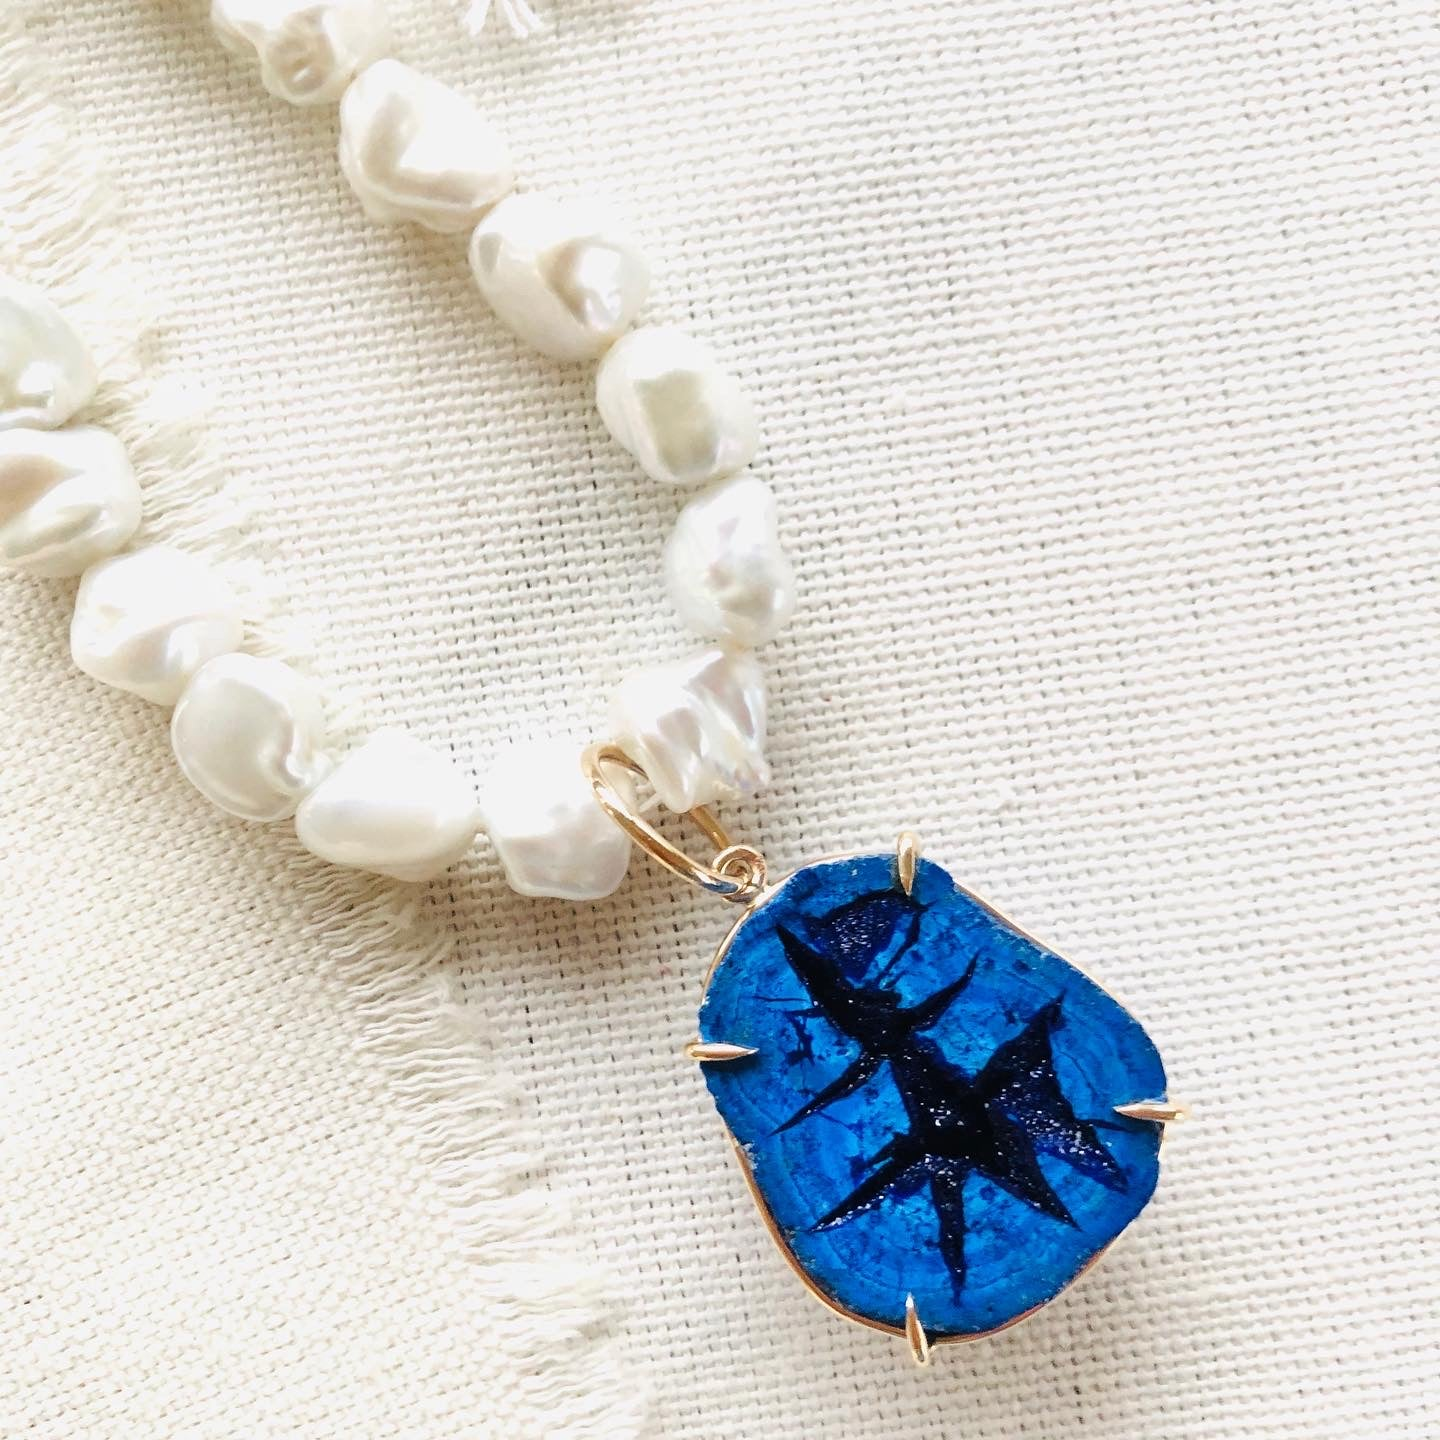 Russian Azurite Geode on Freshwater Pearl Necklace